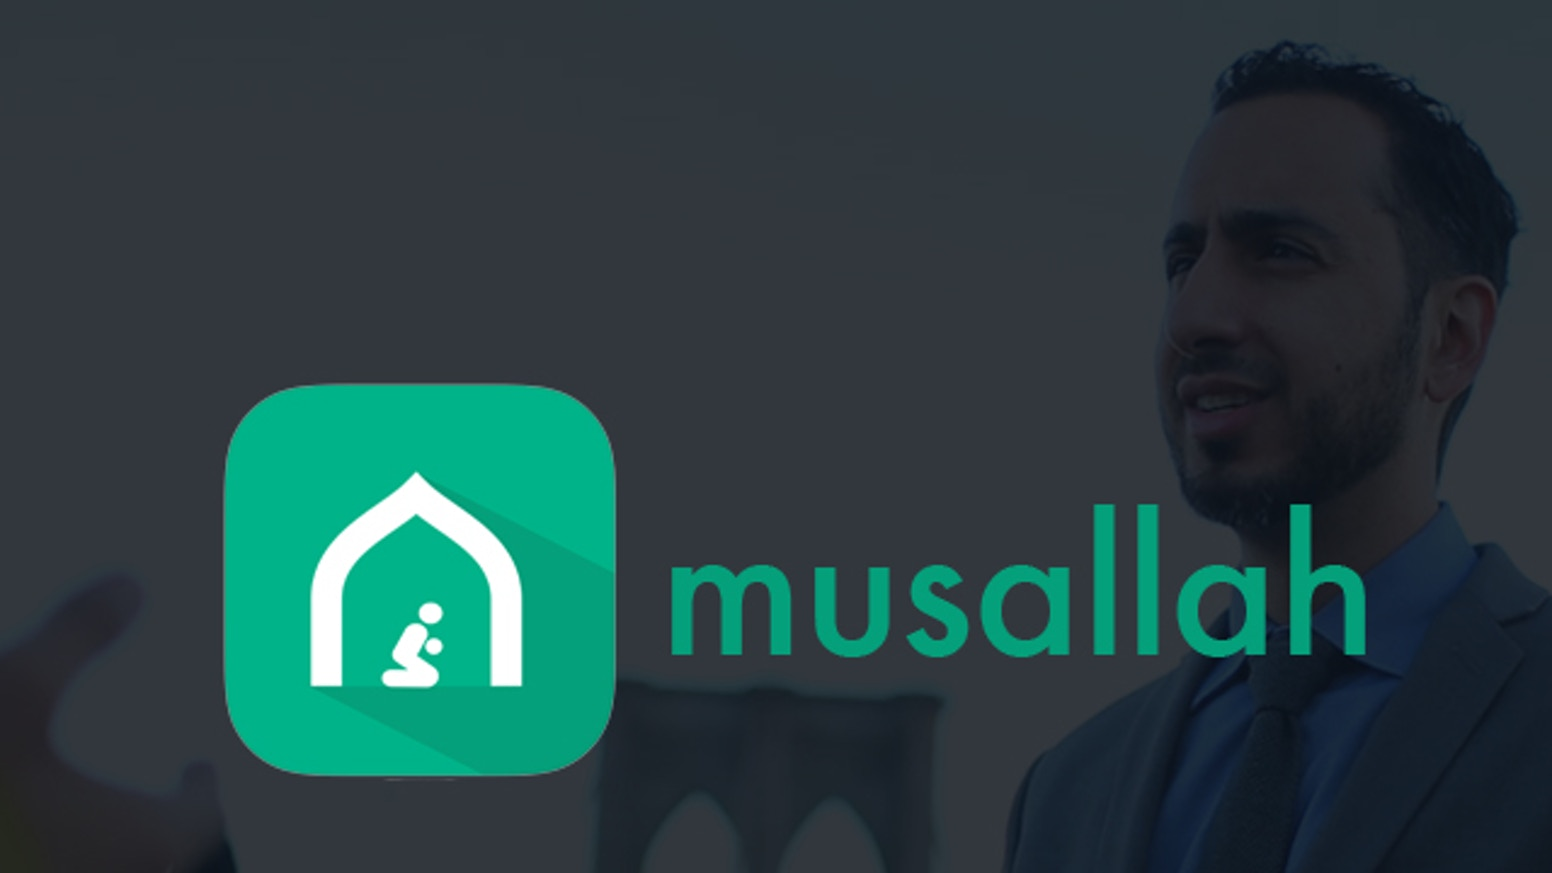 Muslims lack quiet and private spaces to perform their daily prayers (all 5 of them!). Our app, Musallah, solves that problem.